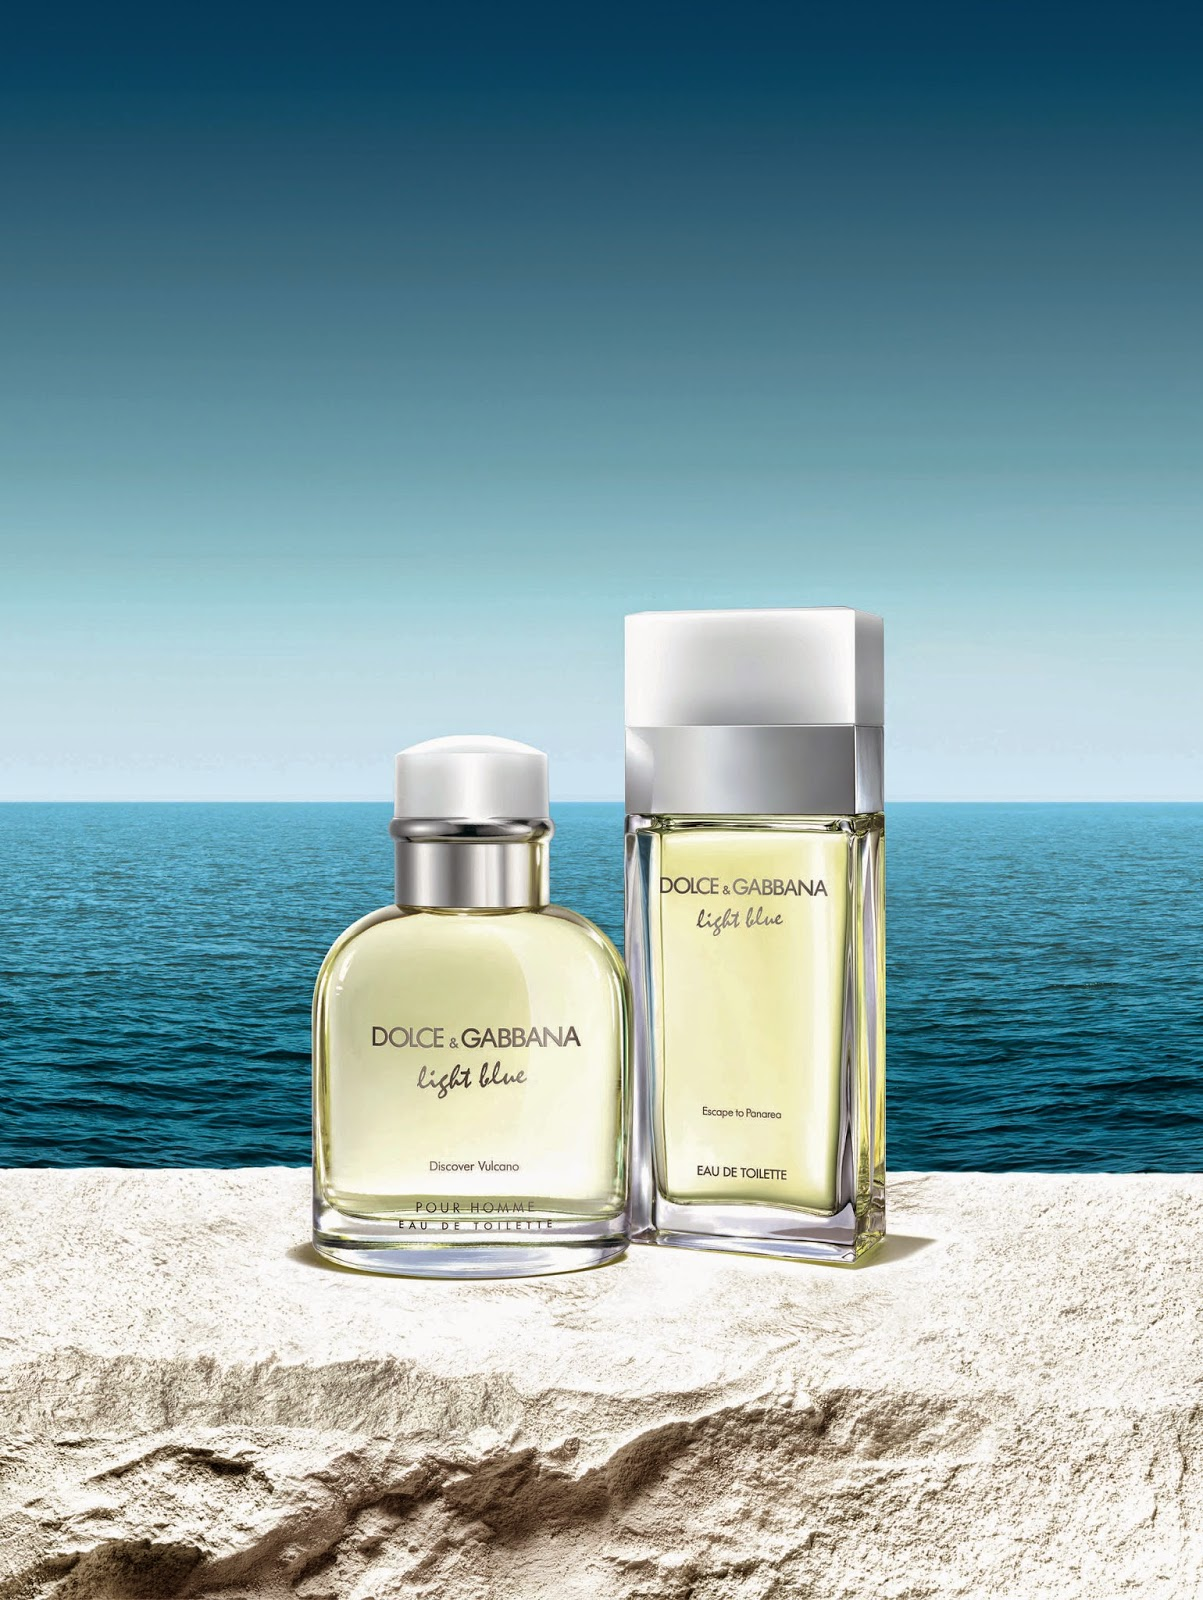 kee hua chee live dolce gabbana introduces new 39 light blue 39 panarea for women and vulcano. Black Bedroom Furniture Sets. Home Design Ideas